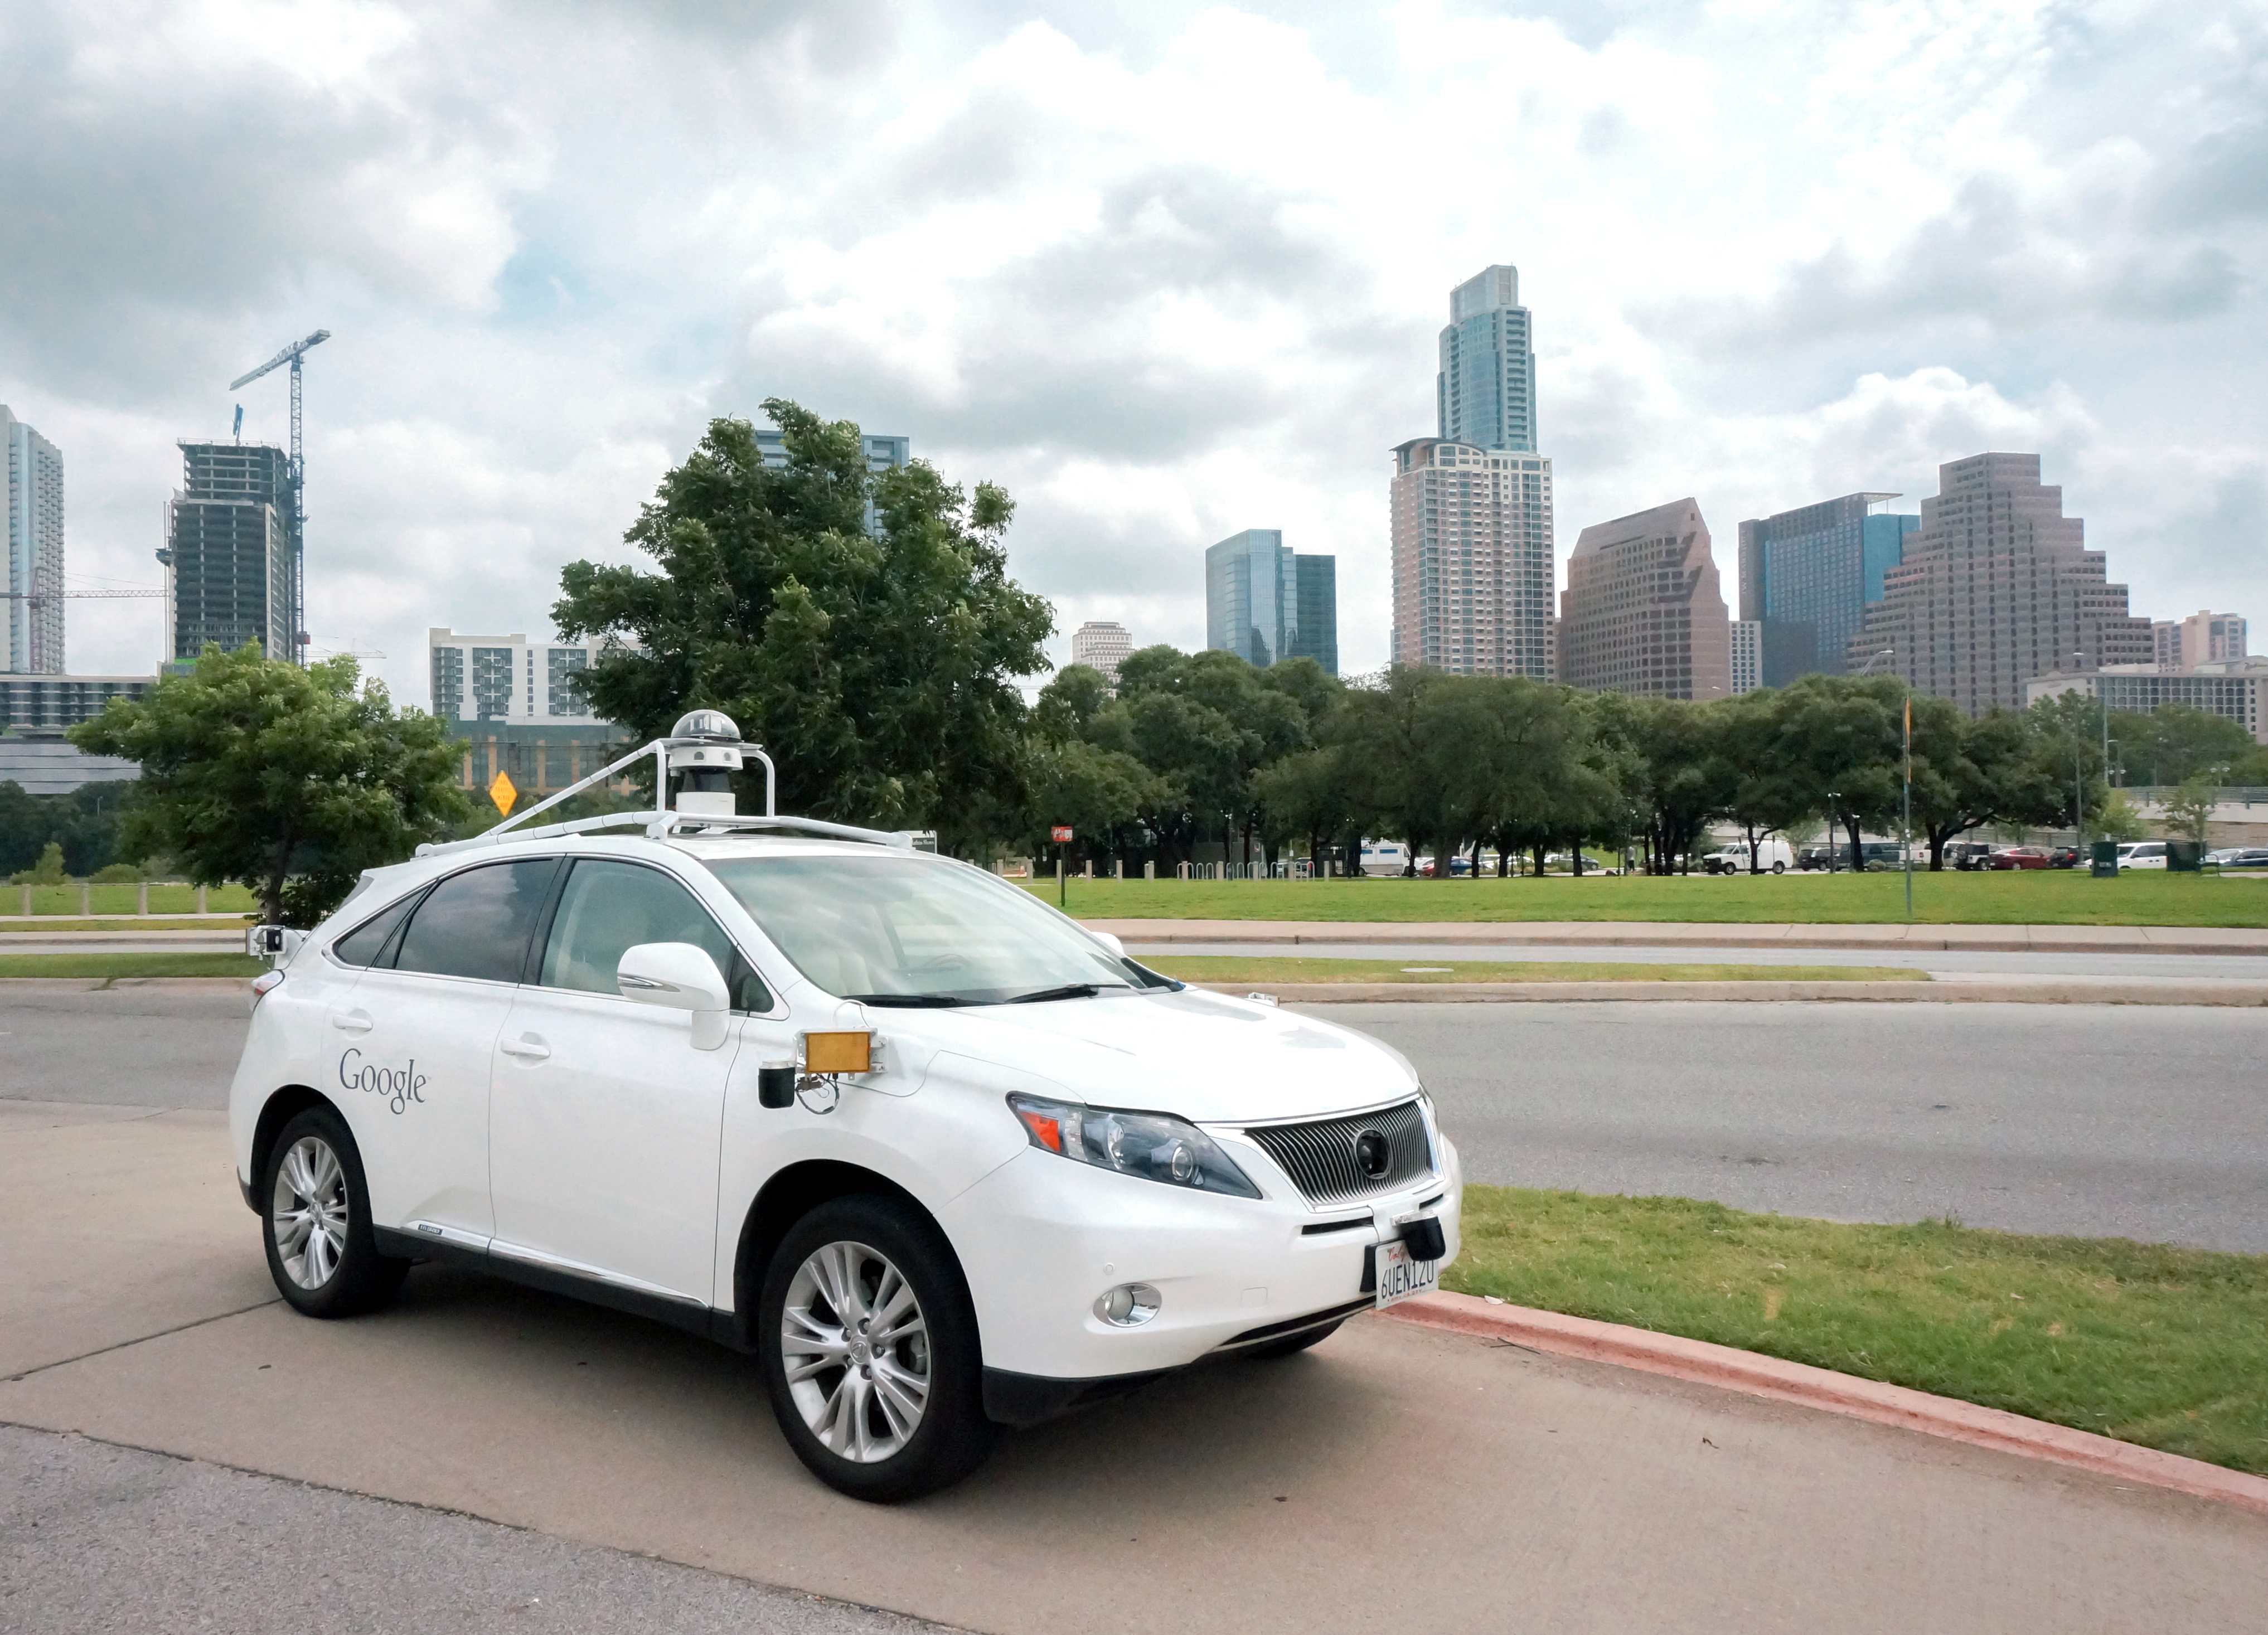 Will people skip planes and trains for driverless cars?